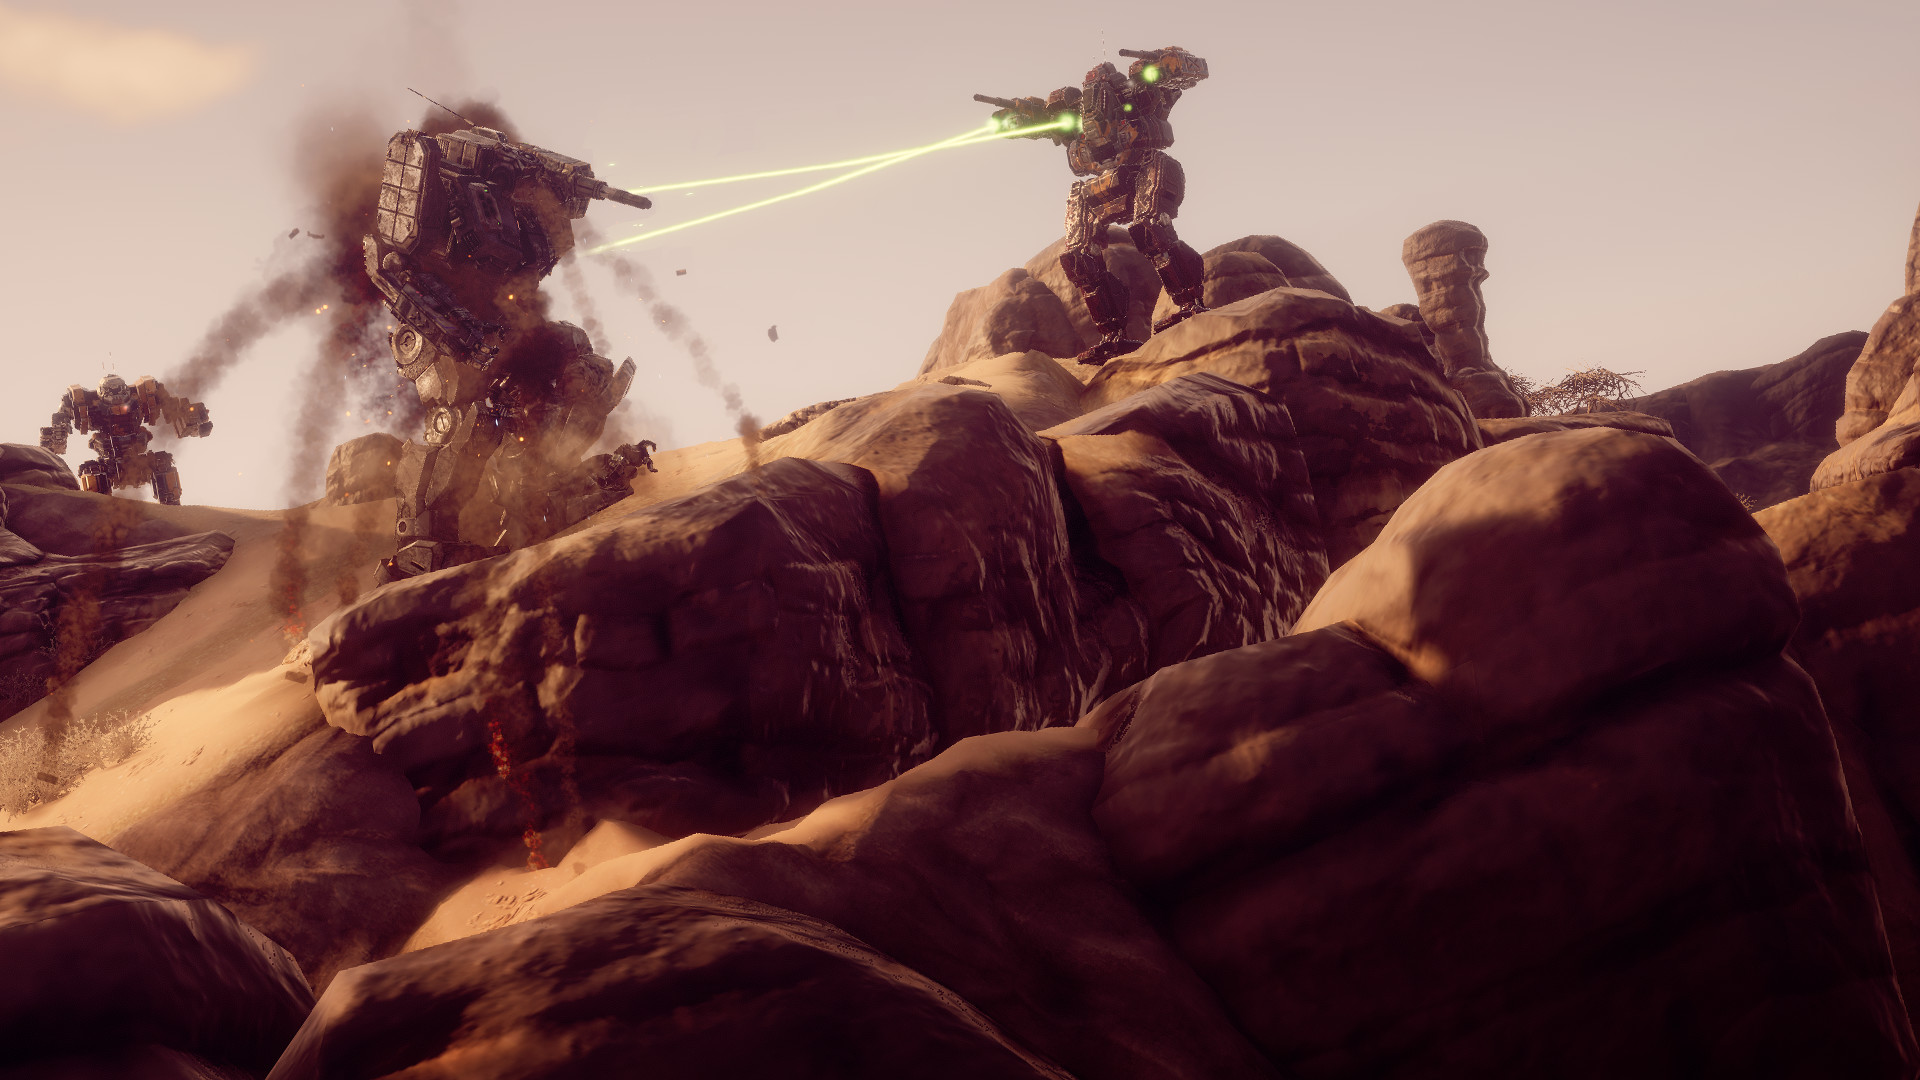 There's A BattleTech Mod That Will Make Your Life Easier